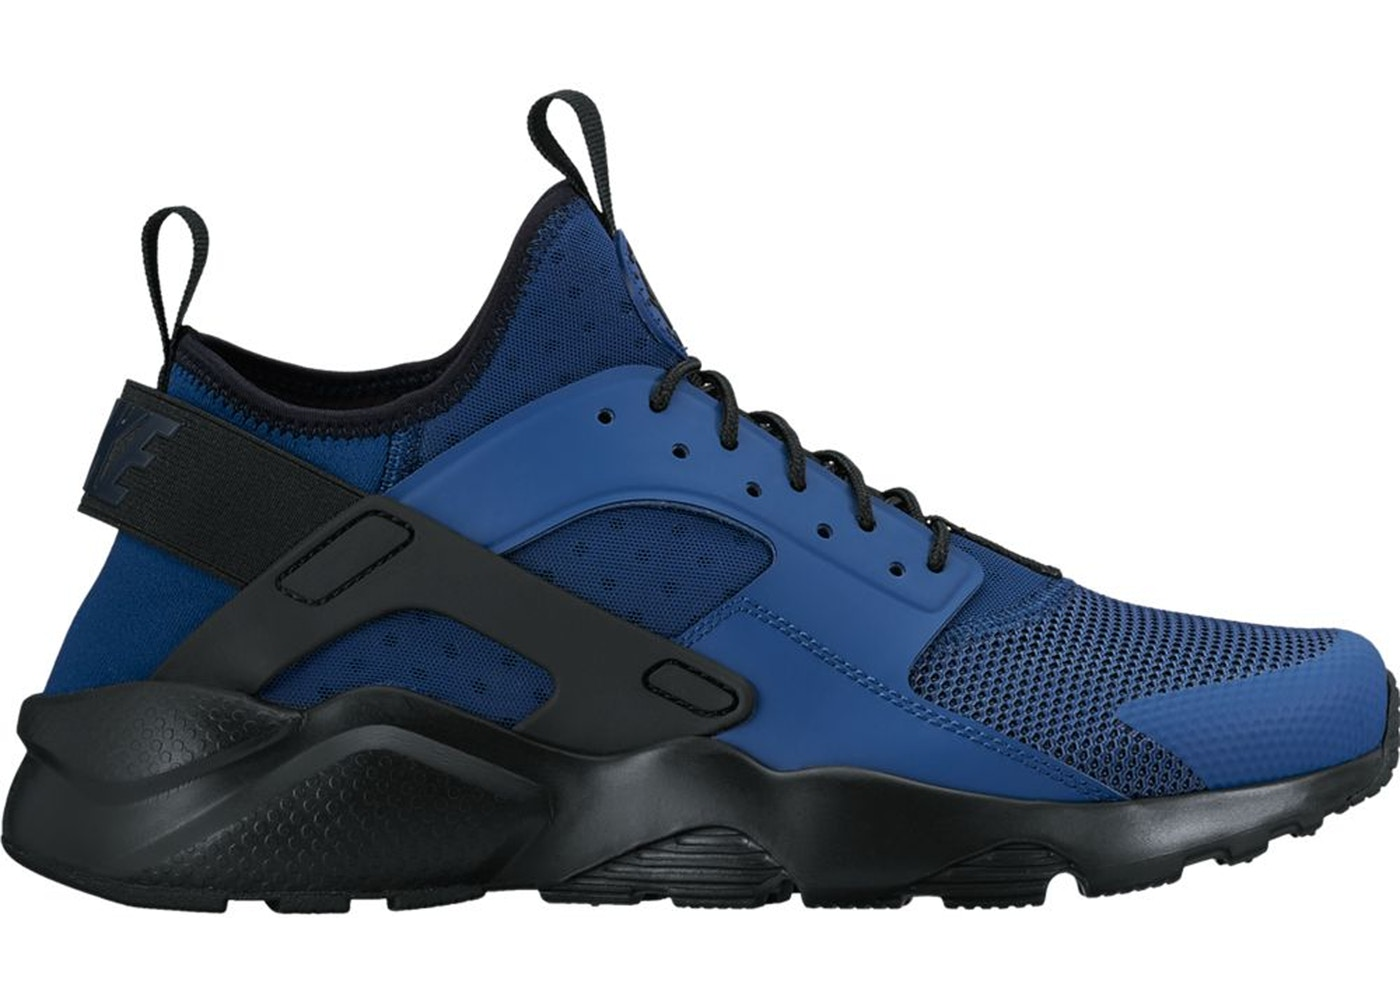 379983d0021 Air Huarache Run Ultra Coastal Blue - 819685-402